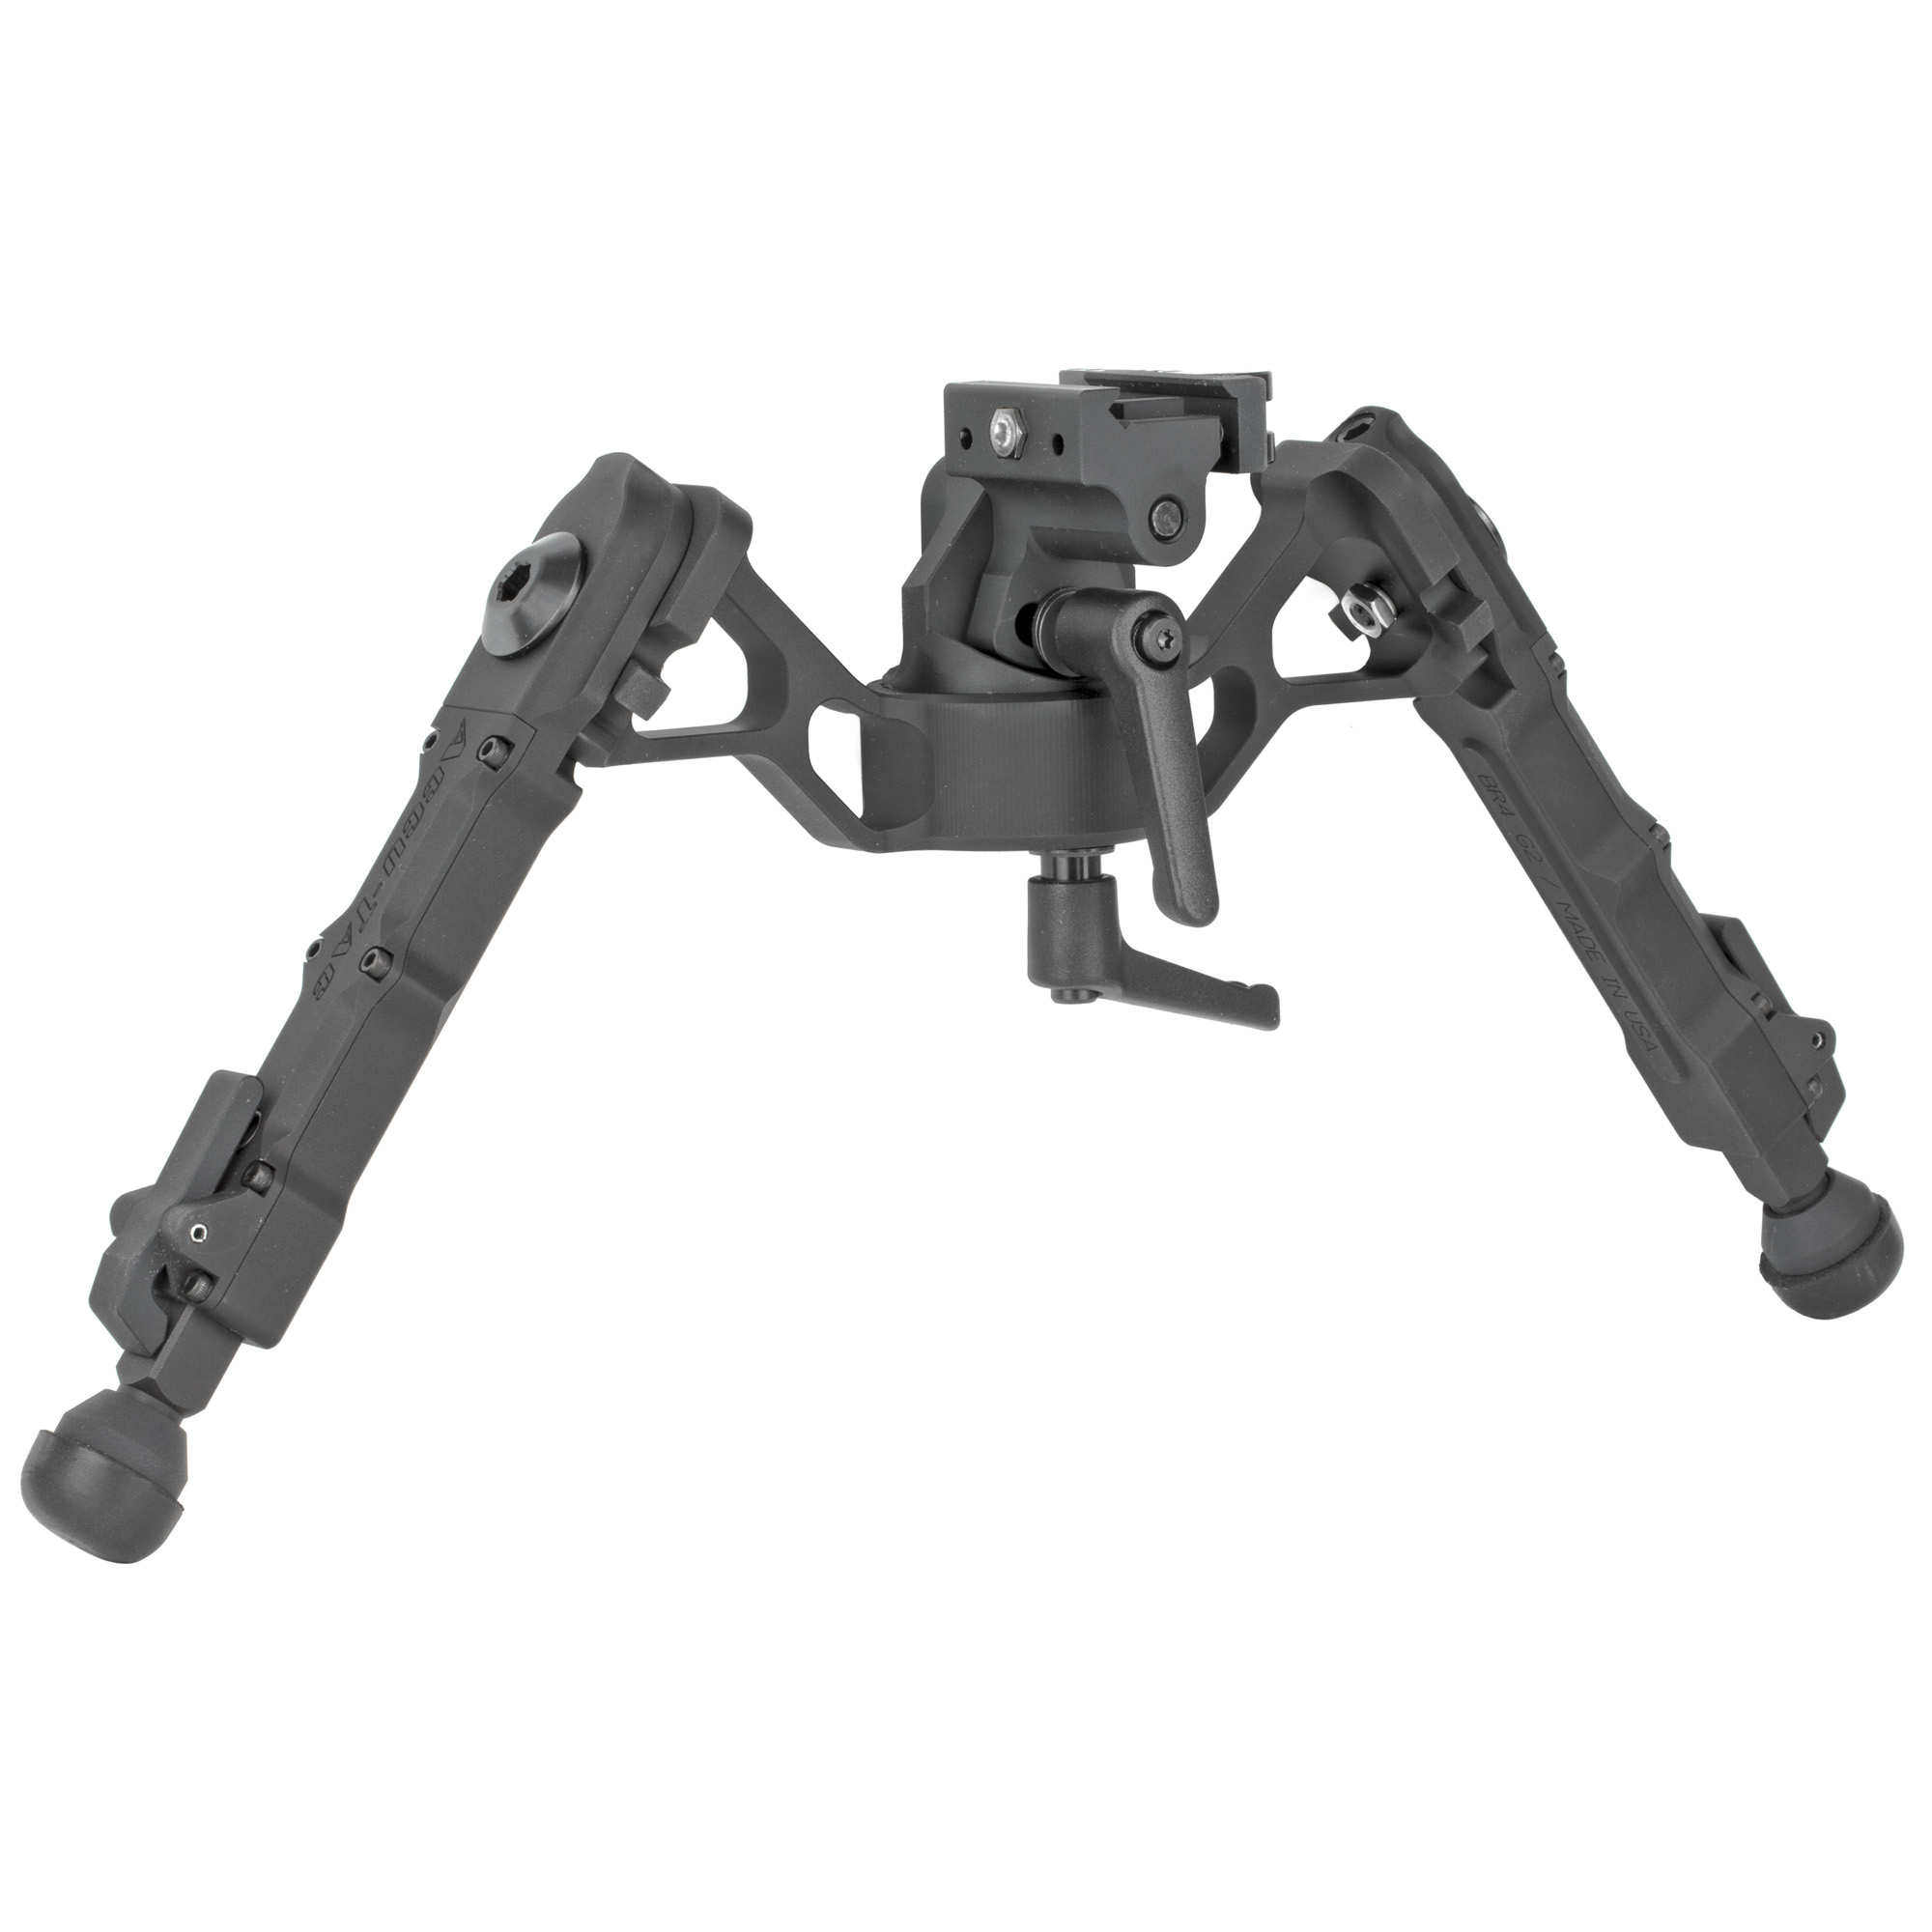 """The Accu-Tac F-G2 F-Class Bipod with the quick detach was designed"""" engineered"""" and manufactured in the USA. This bipod is perfect for long range"""" target"""" competition"""" and tactical shooting. The FC-G2 is 100% billet"""" made from the highest quality aircraft aluminum available. Their quick detach rail mount is simple"""" quick"""" and very secure. The quick detach attaches to a 1913 Picatinny rail and mounts in seconds without the need to use extra tools for tightening. Their F-Class has the ability to pan"""" and cant. The leg design allows the shooter to quickly adjust to 5 different positions with the advantage of being able to position each leg differently. To engage or adjust leg position"""" simply pull the leg downward to move each leg independently. Leg positions can be deployed in a 45 or 90 degree position either forwards or backwards"""" locking securely into 5 positions through a 180 degree arch."""